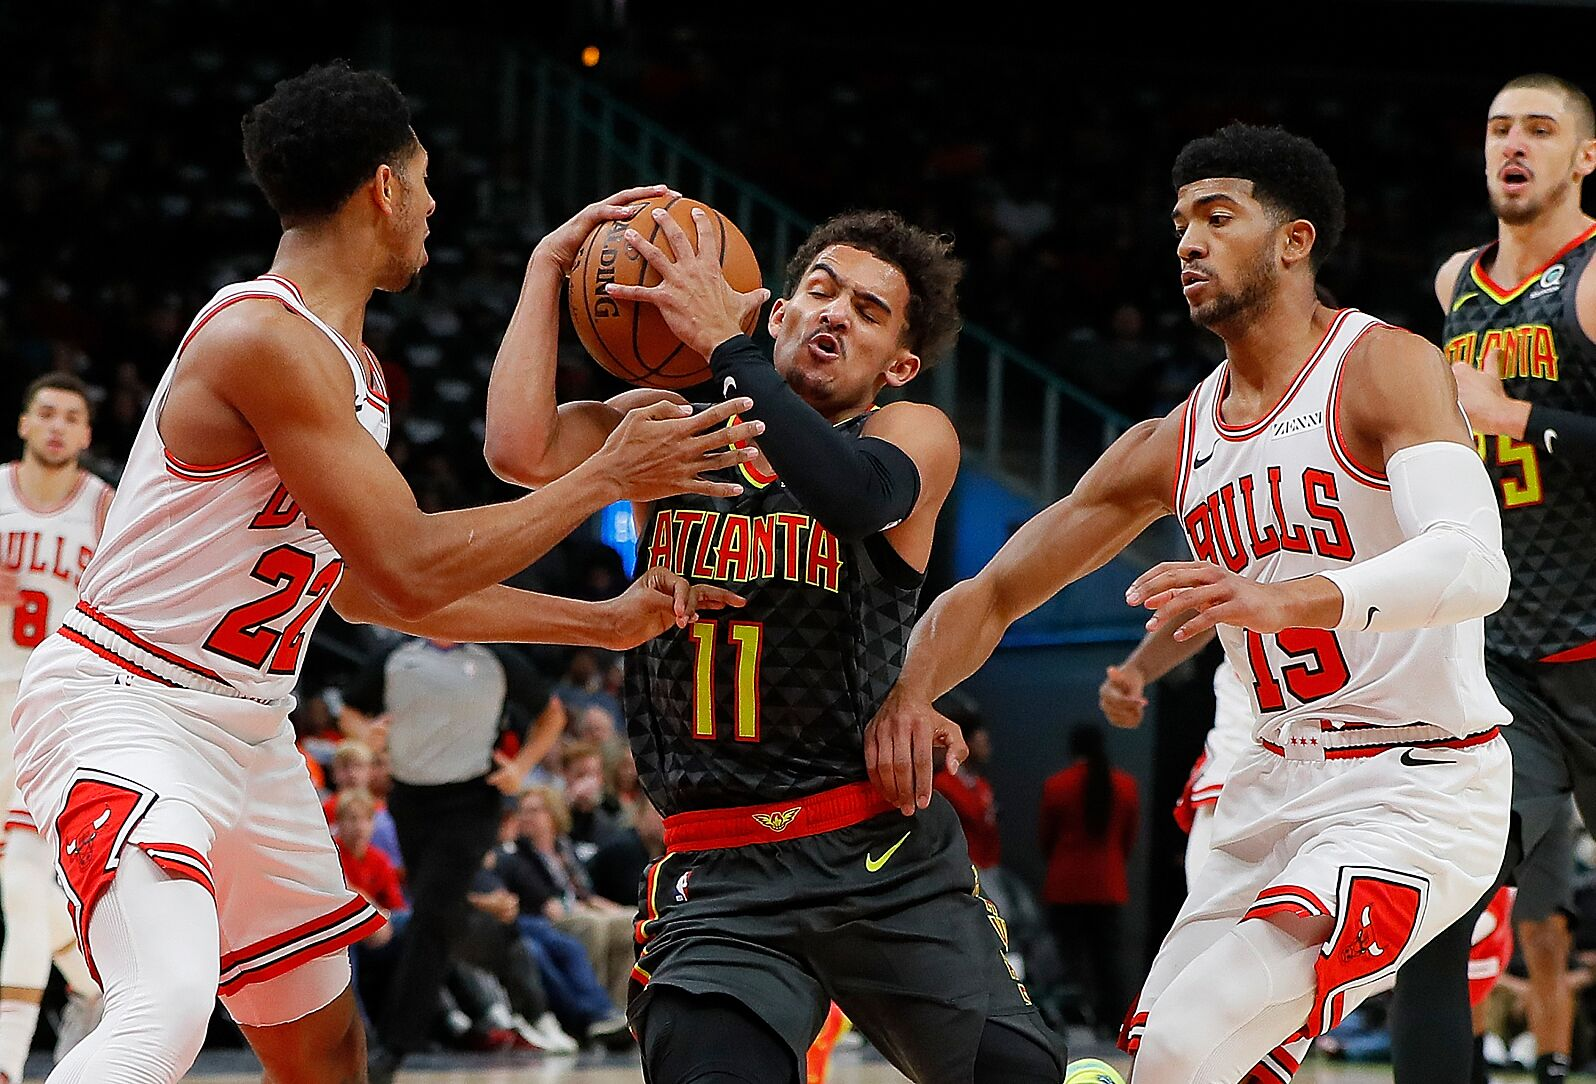 atlanta hawks: what went wrong versus bulls? what's next?